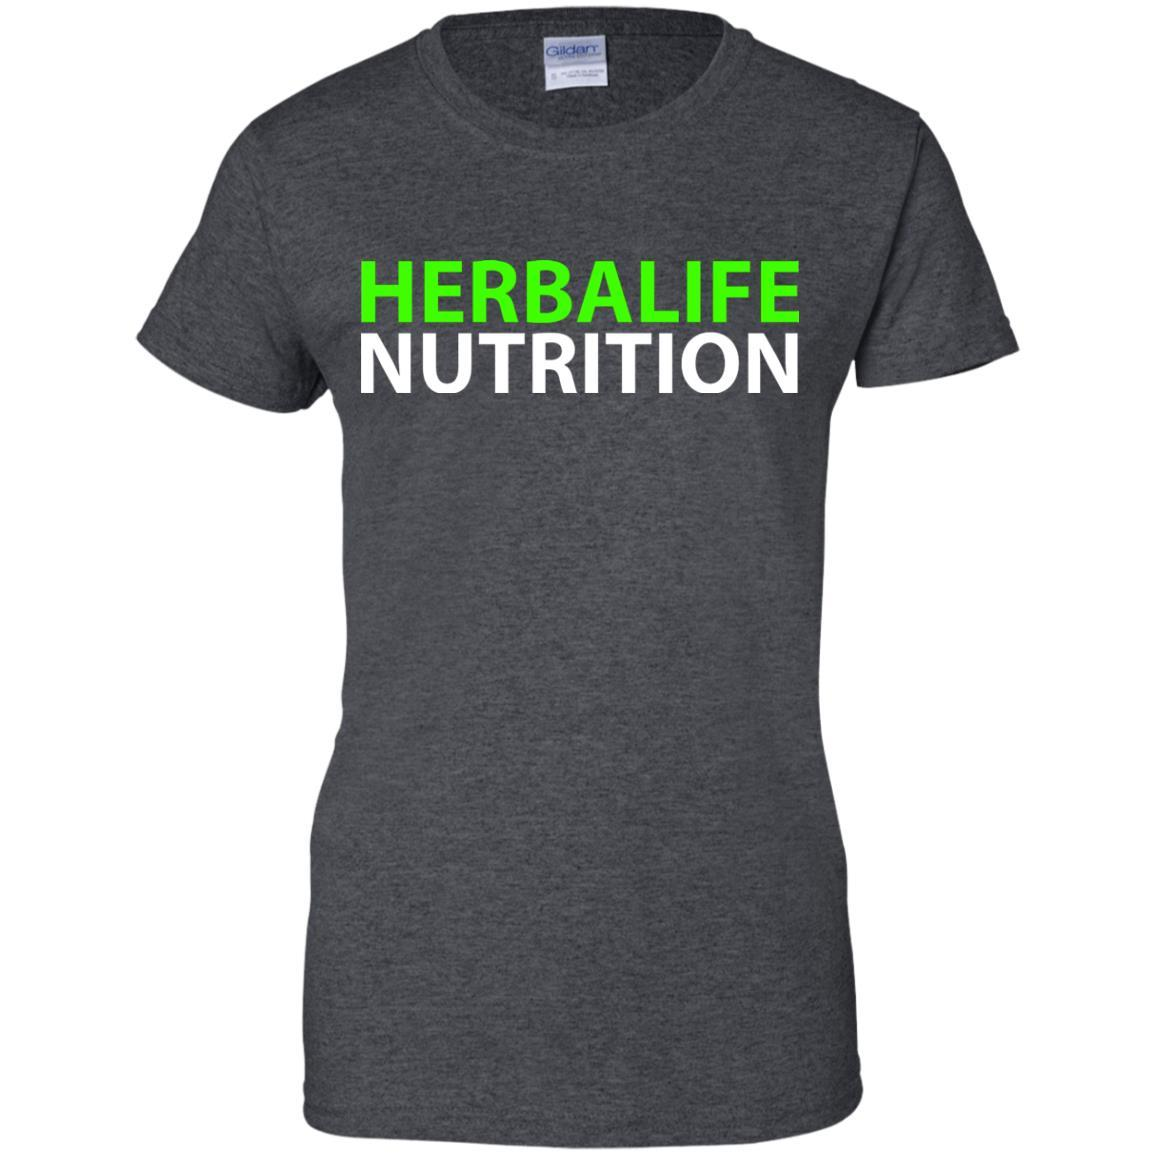 HERBALIFE NUTRITION T-Shirt - White Design